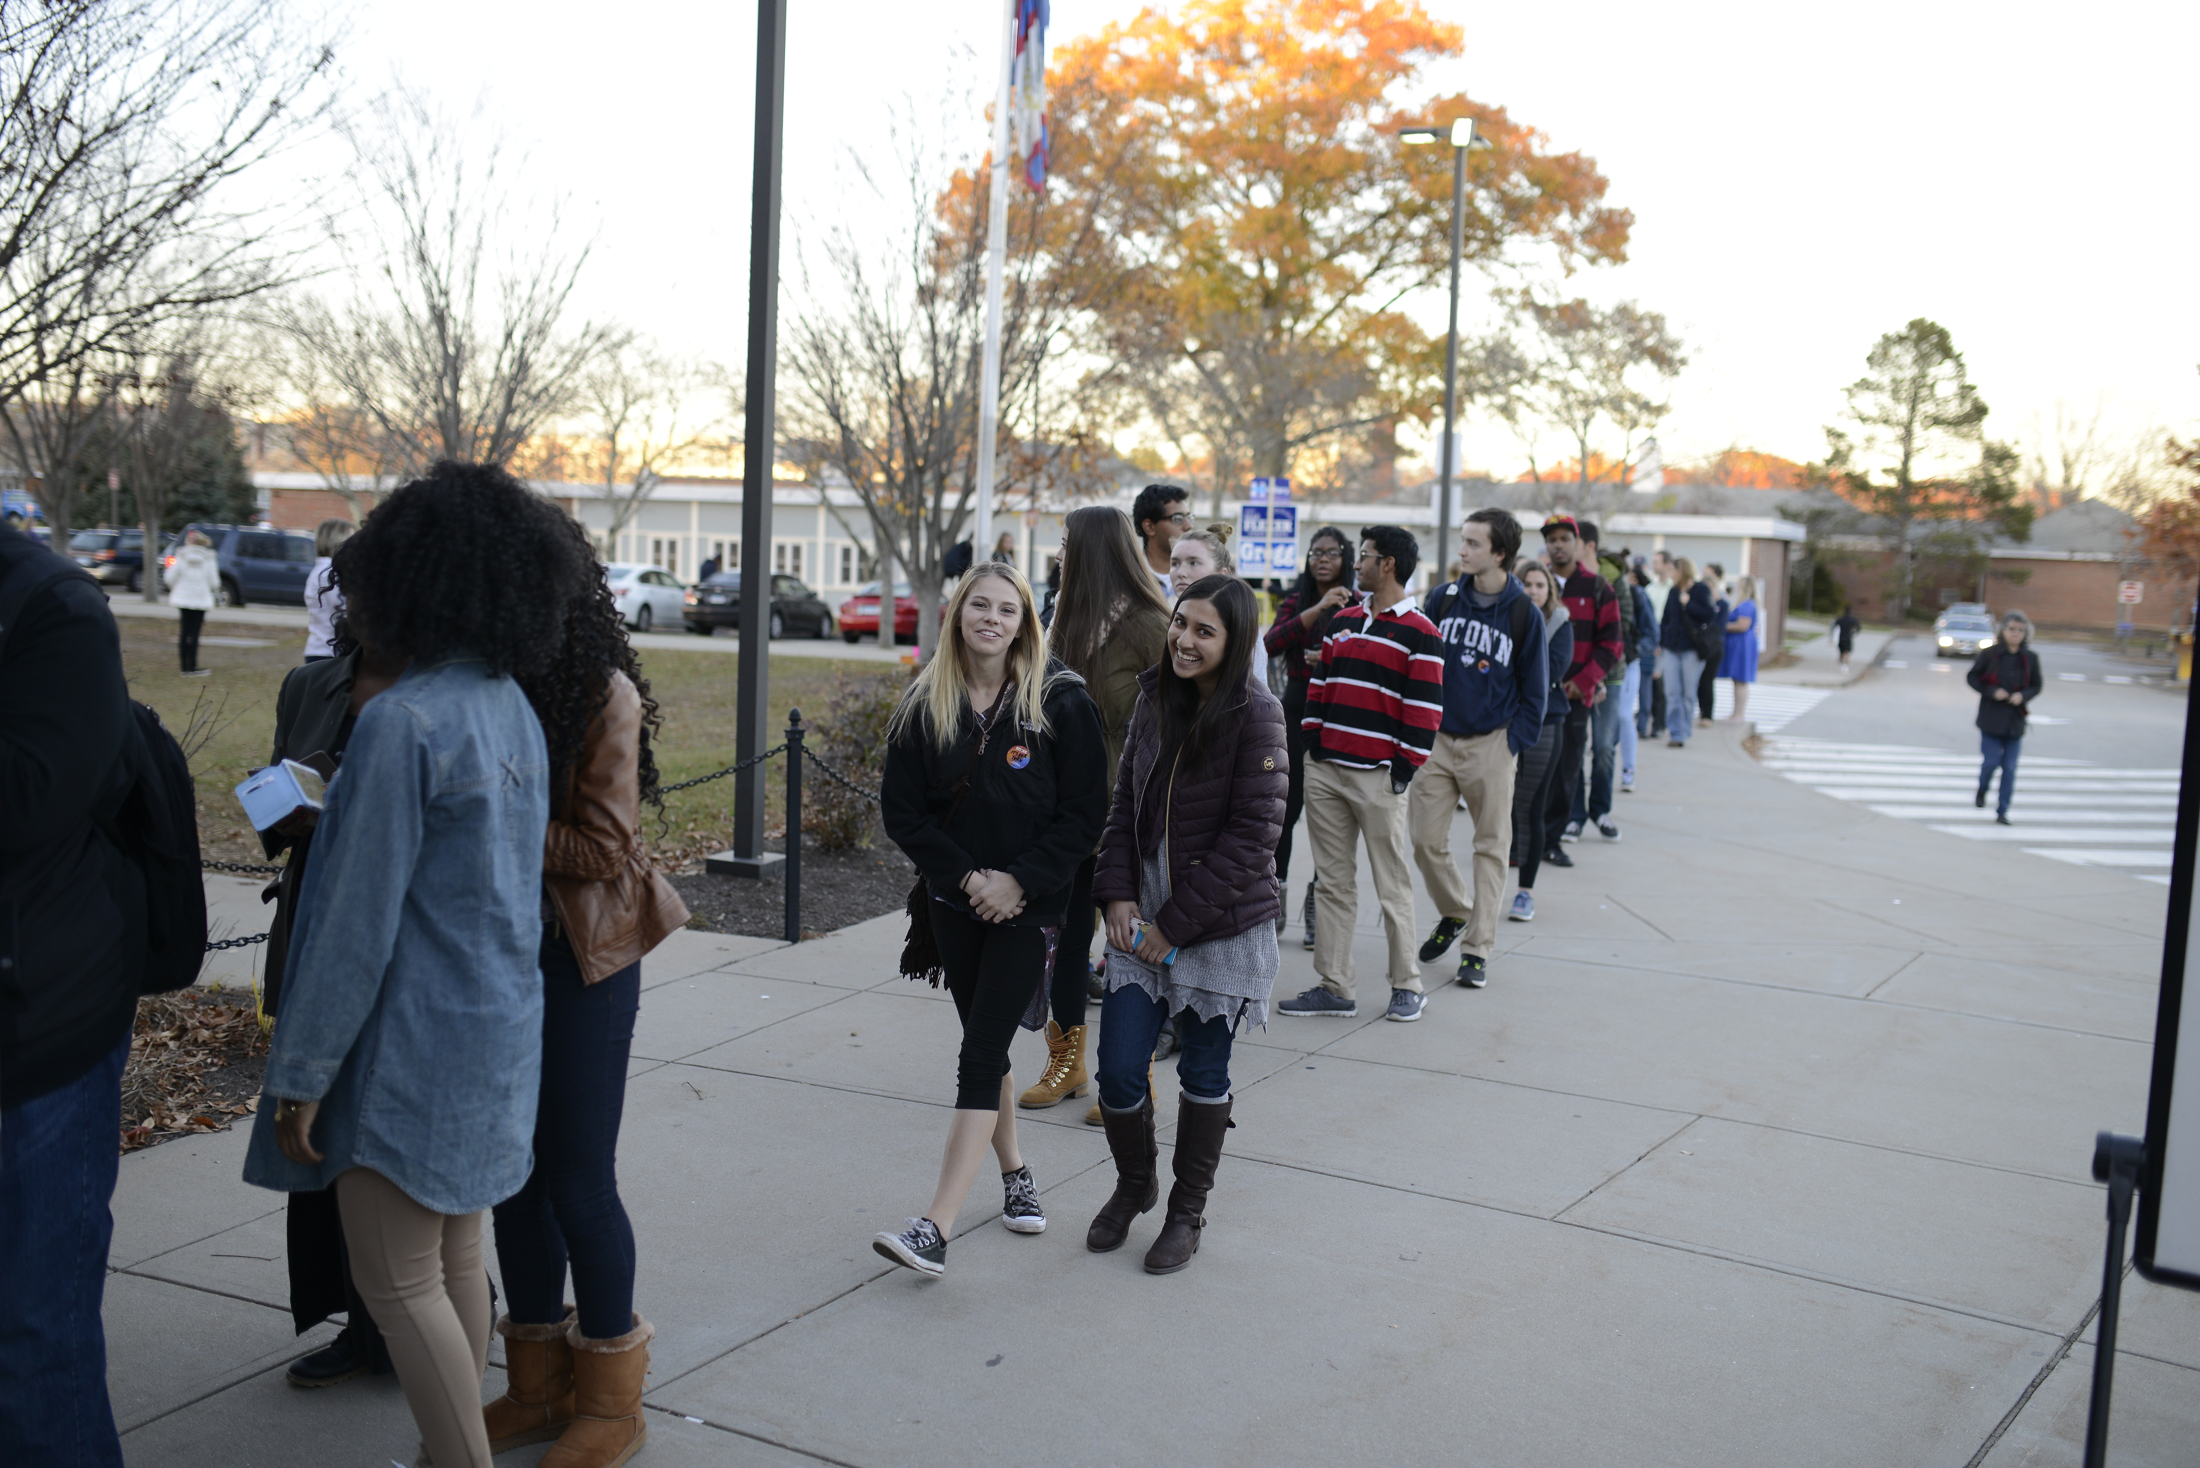 Students wait in line to vote outside the Mansfield Community Center on Tuesday, Nov. 8, 2016. (Jason Jiang/The Daily Campus)